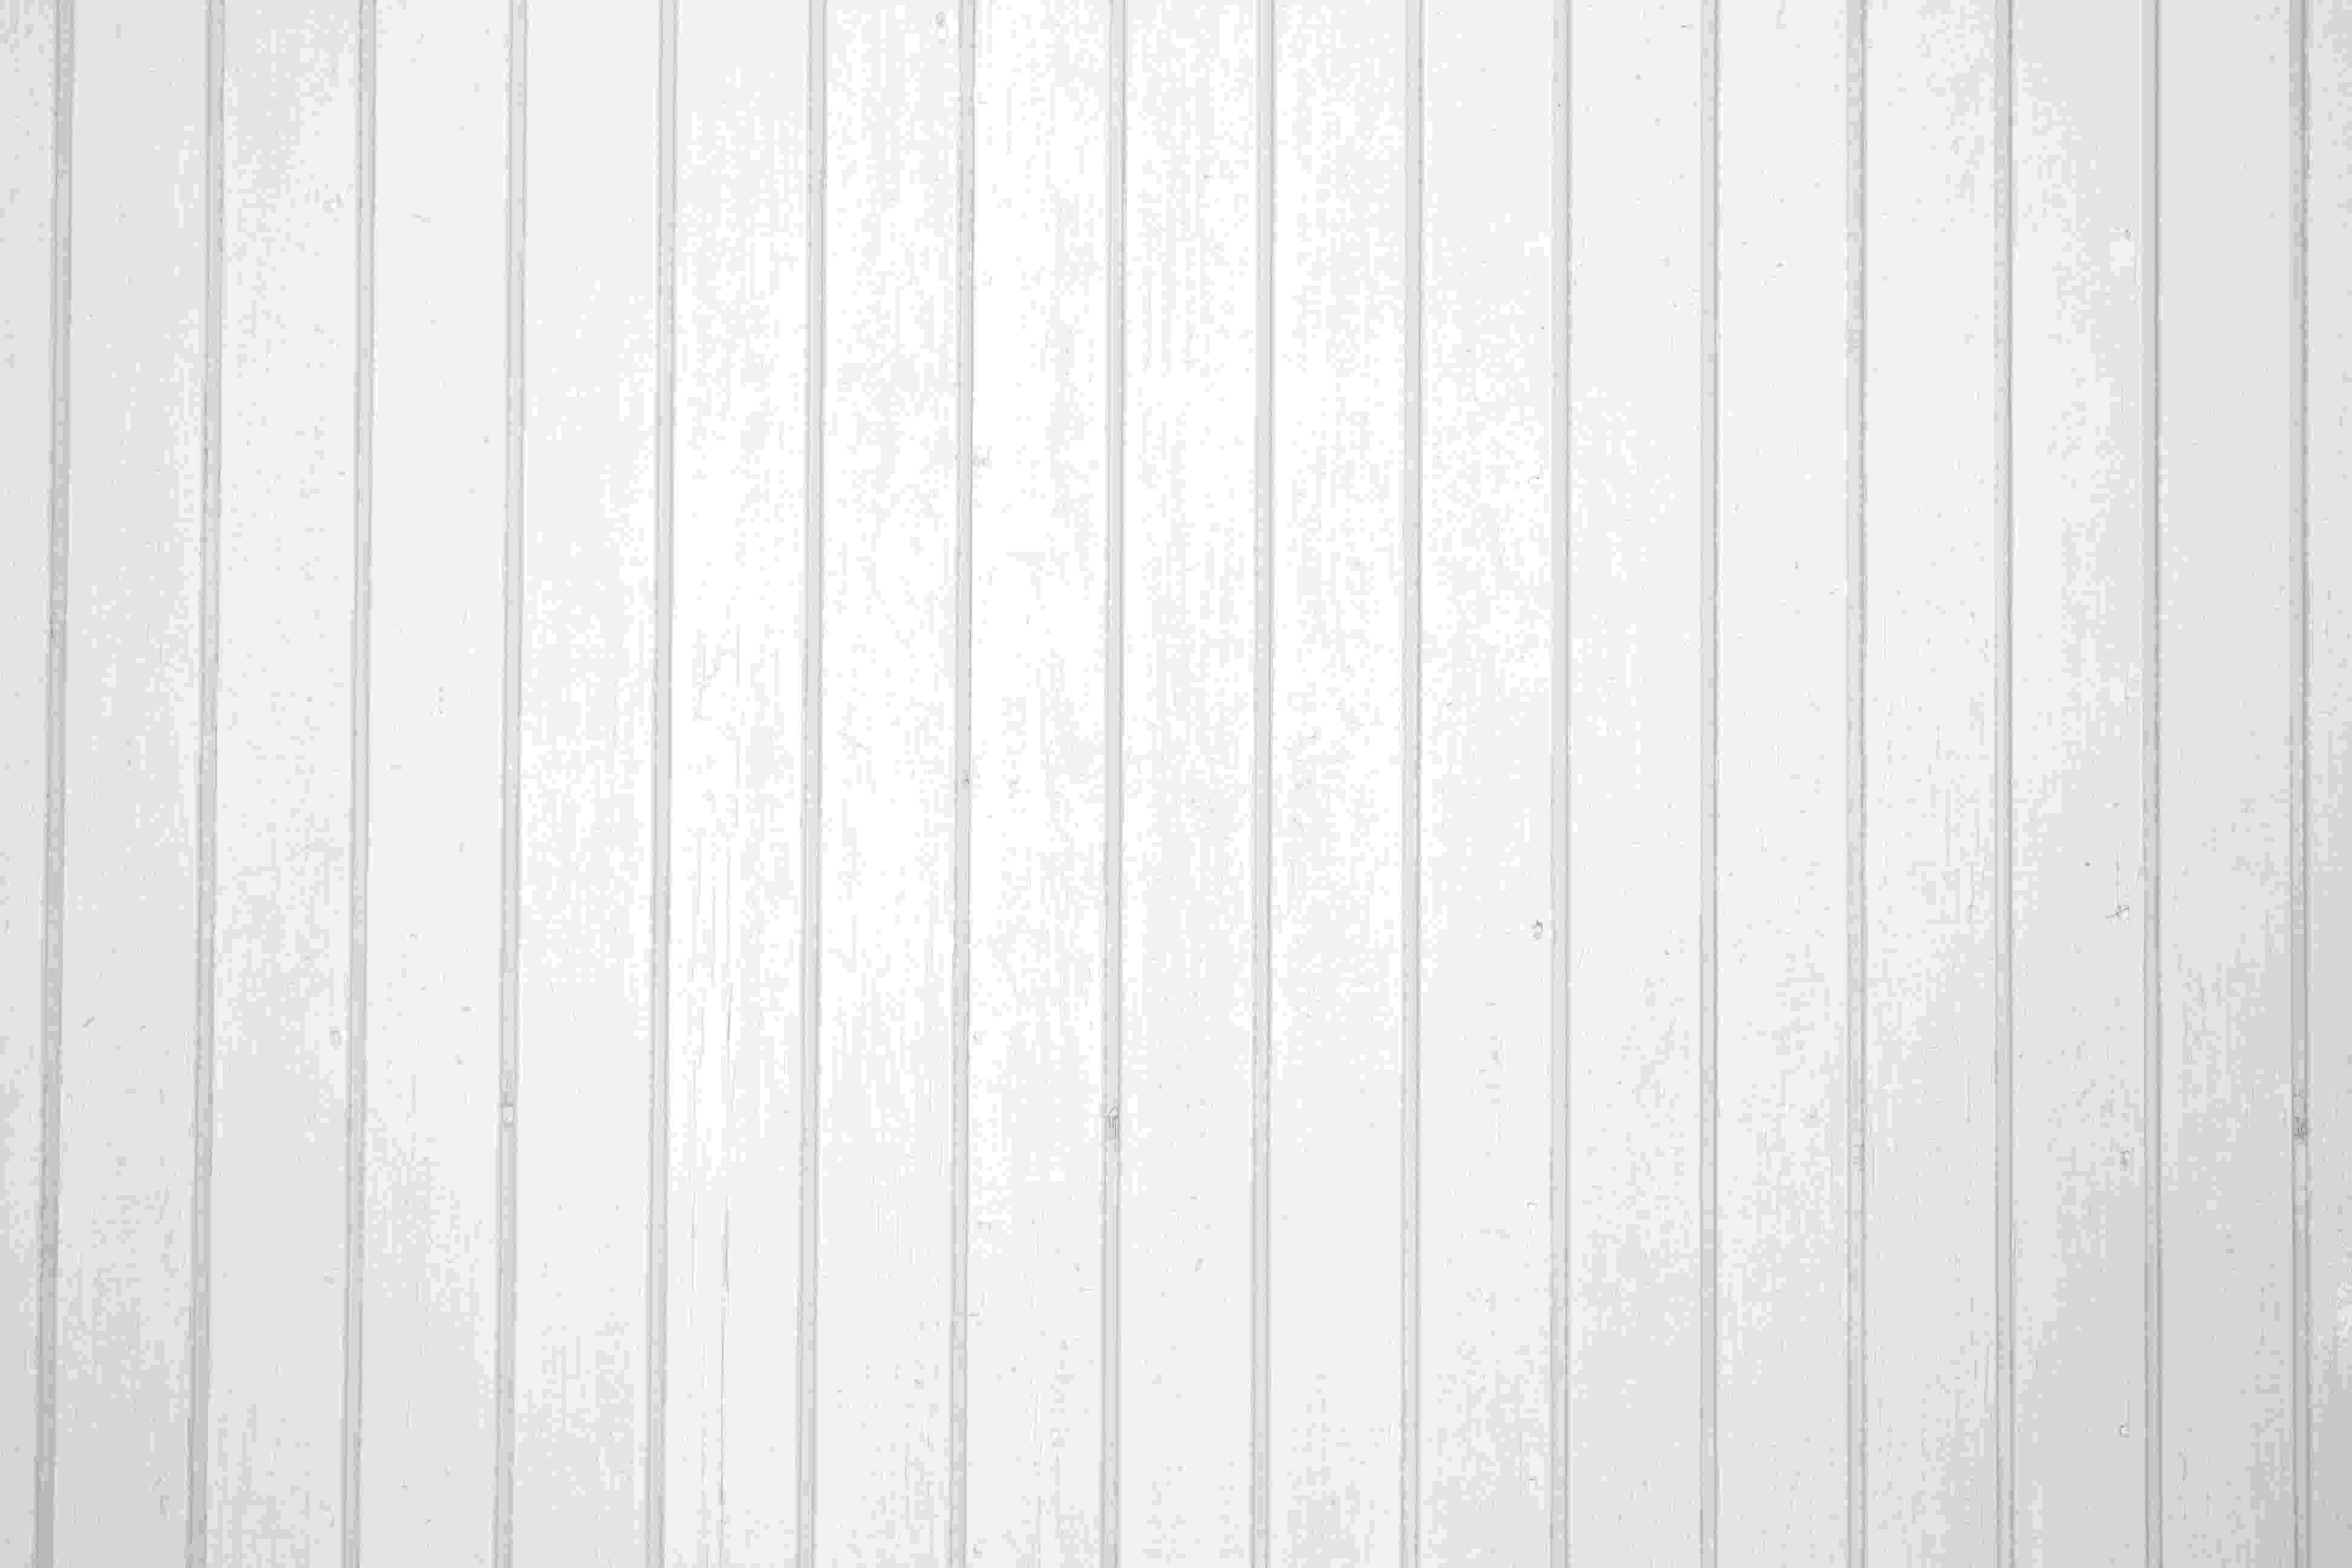 color ideas painting wood paneling white white vertical siding or wall paneling texture painting wood ideas paneling color